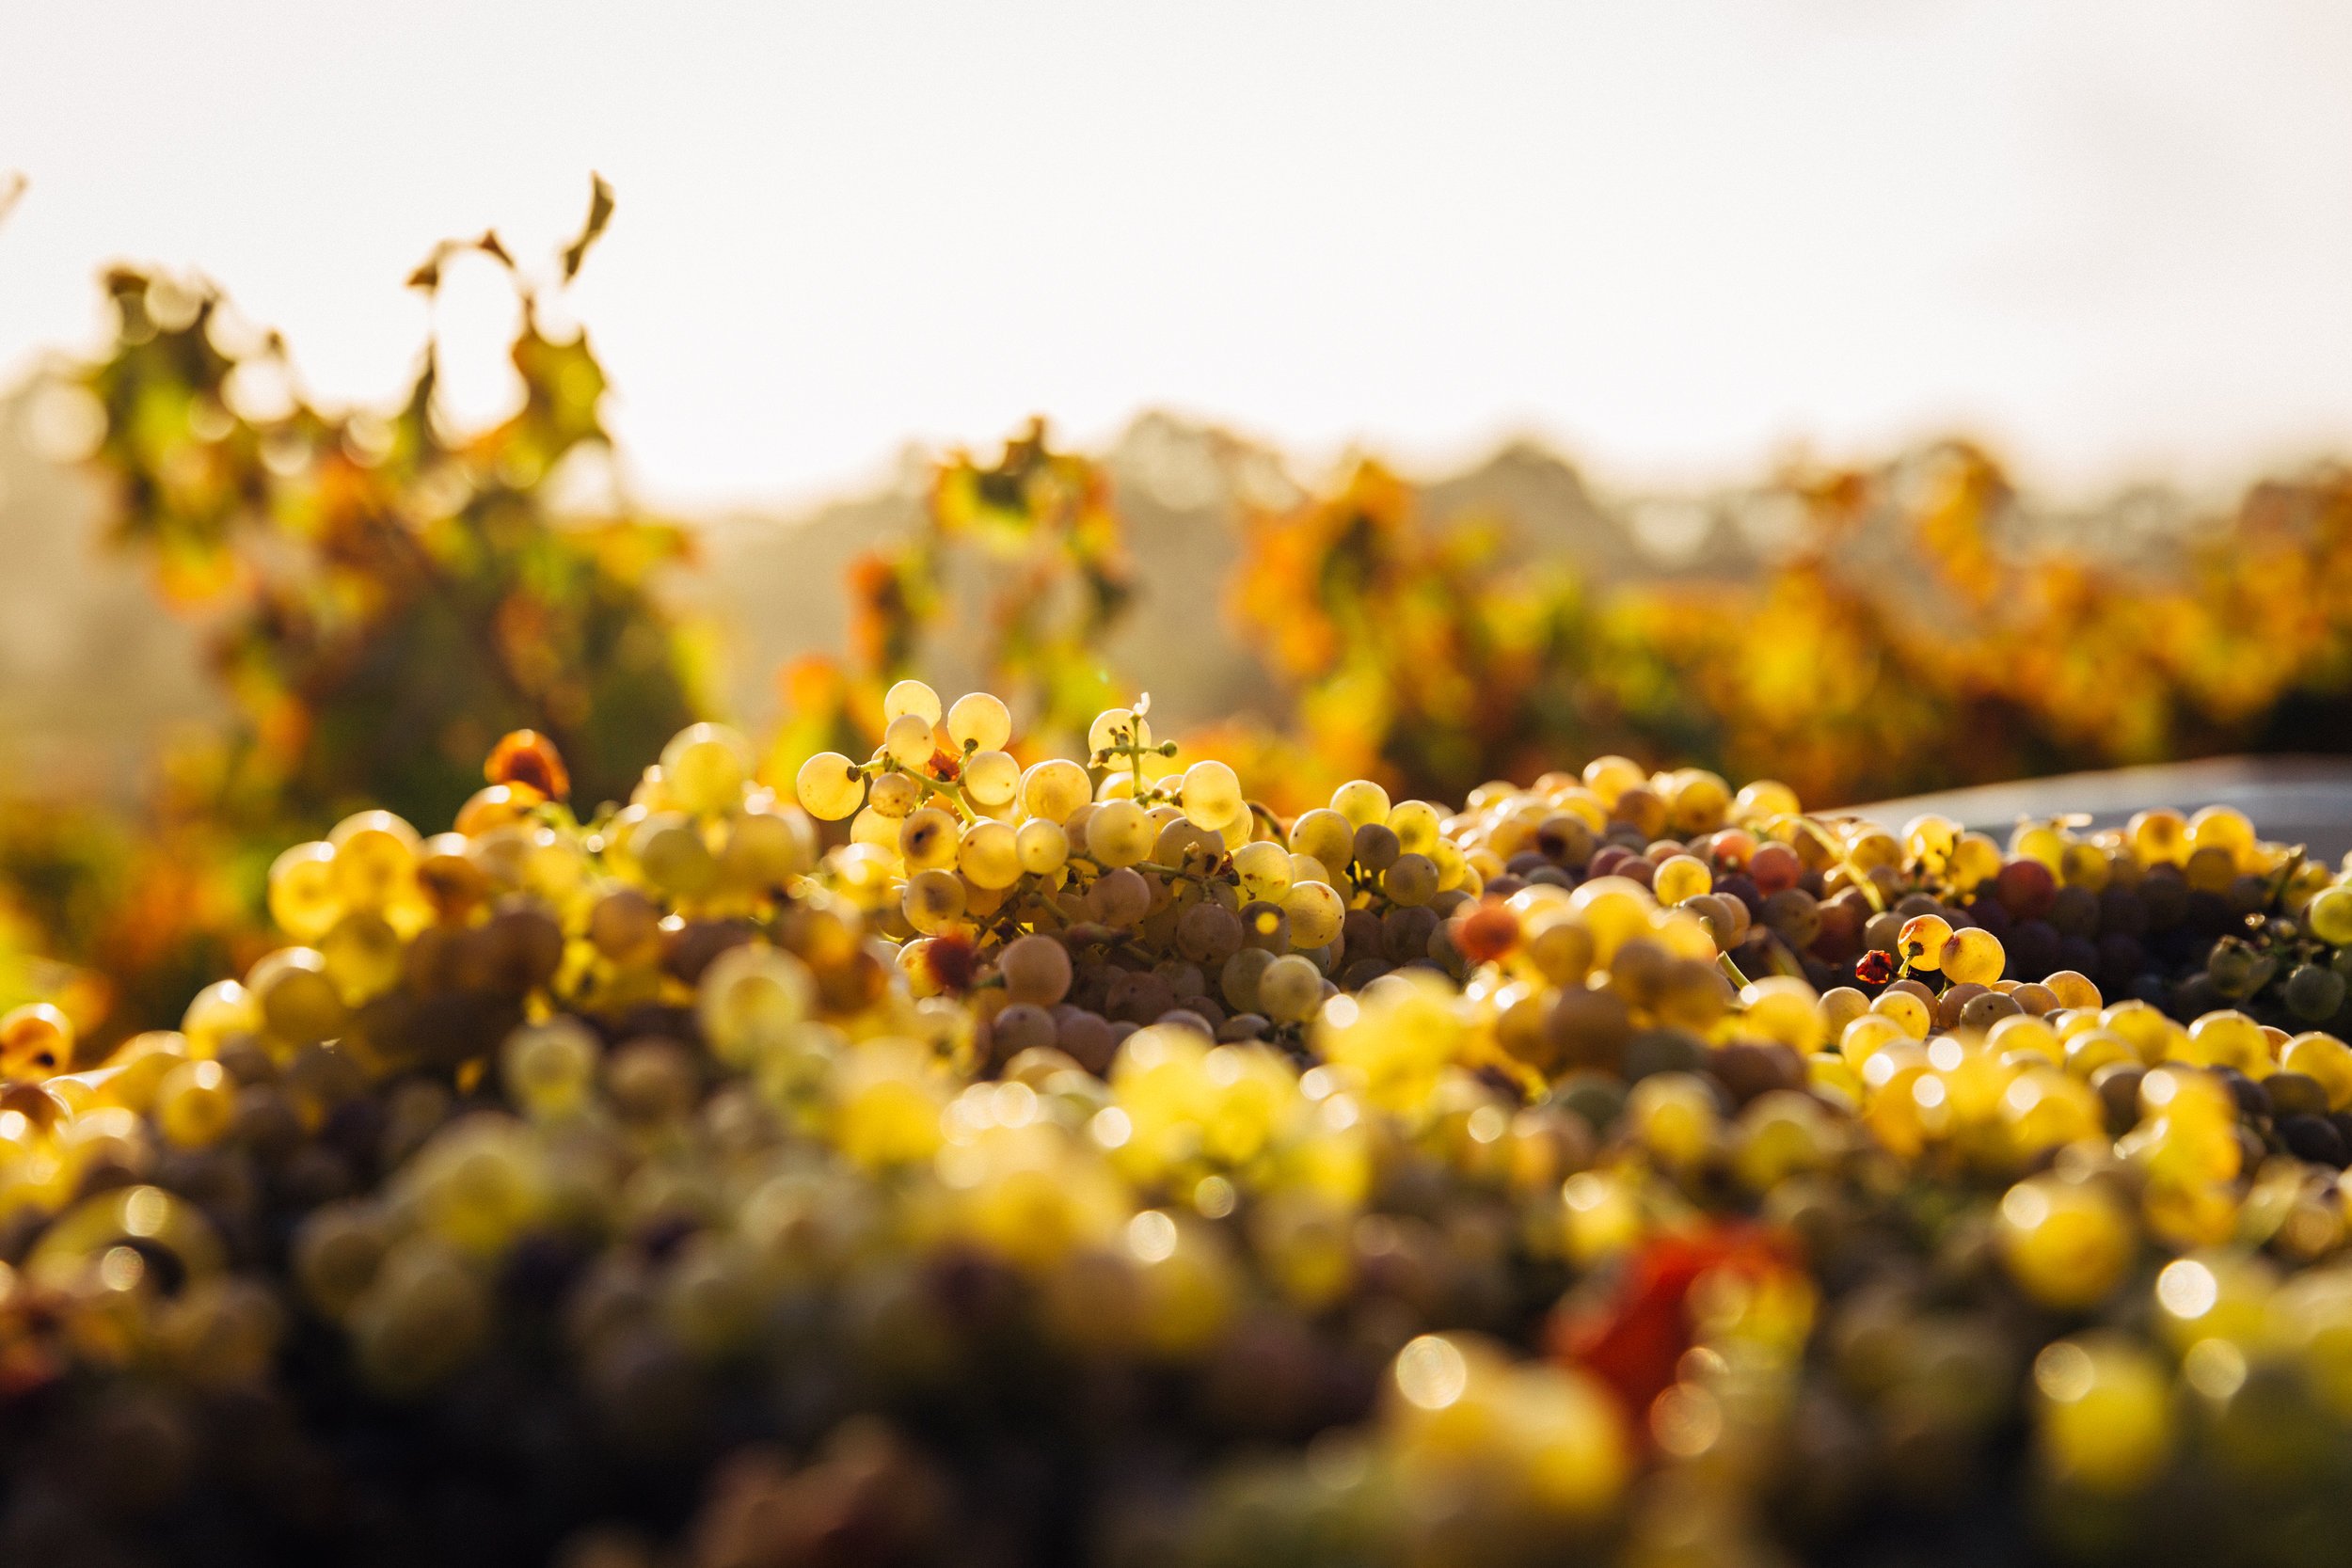 wine grapes piled in a sunny vineyard